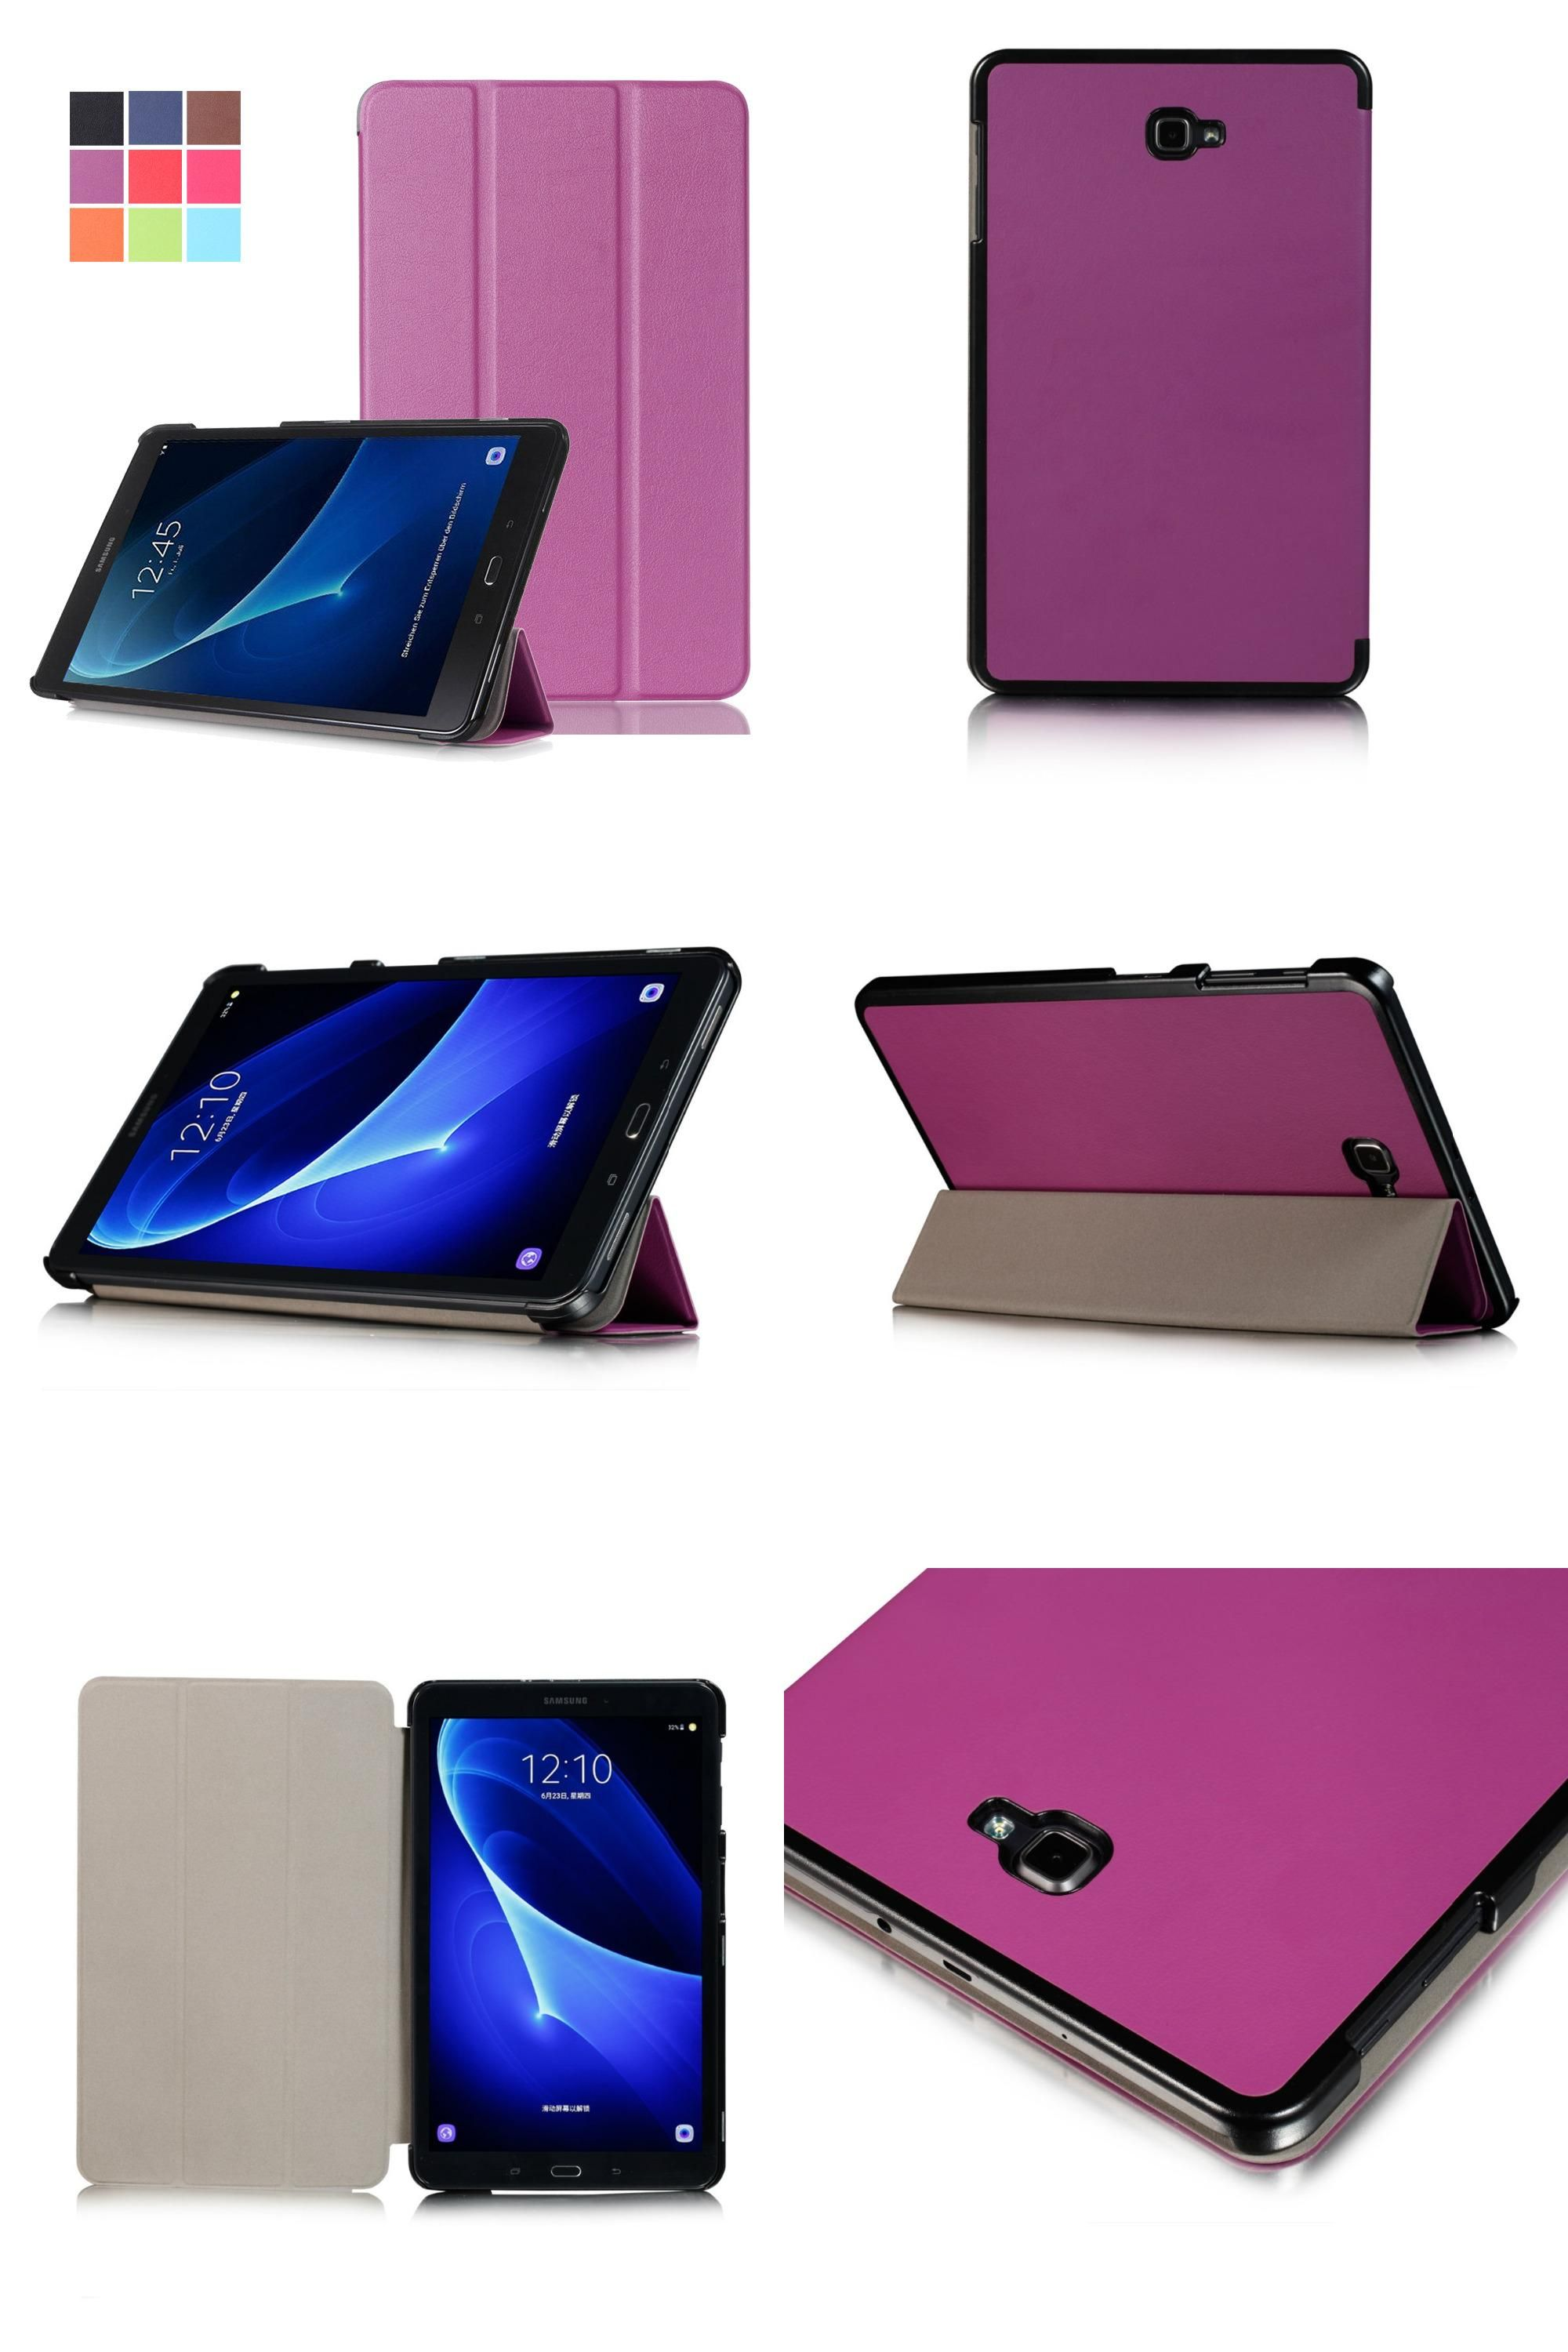 Visit To Buy For Samsung Galaxy Tab A 10 1 T580n T580 T585 Cases 2016 Kst Pu Leather Smart Cover Case Skin Shell For Samsung Galaxy Tab Case Cover Galaxy Tab